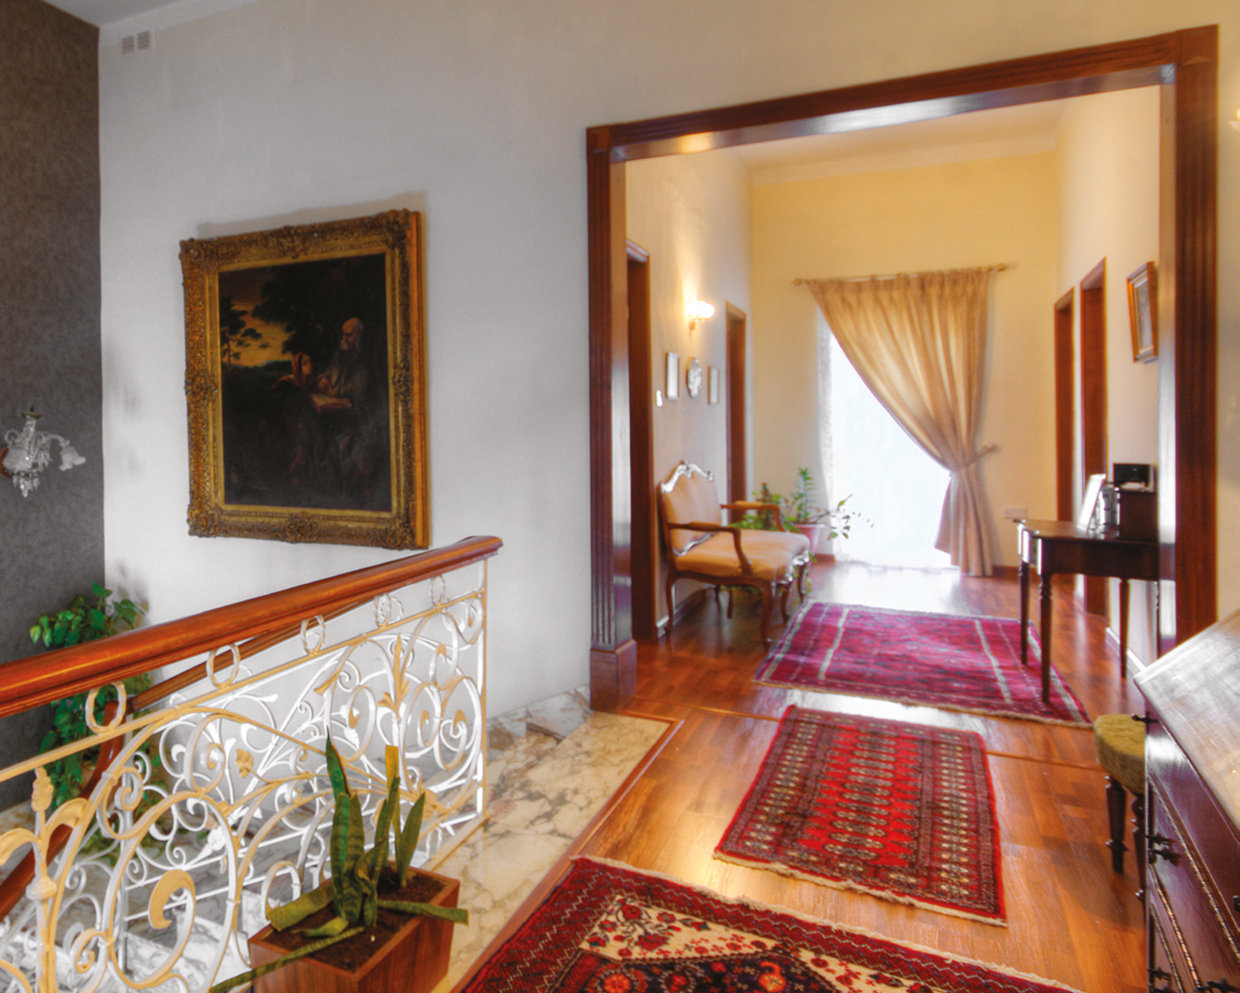 The hall upstairs is roomy with space for another living area. © Alan Carville